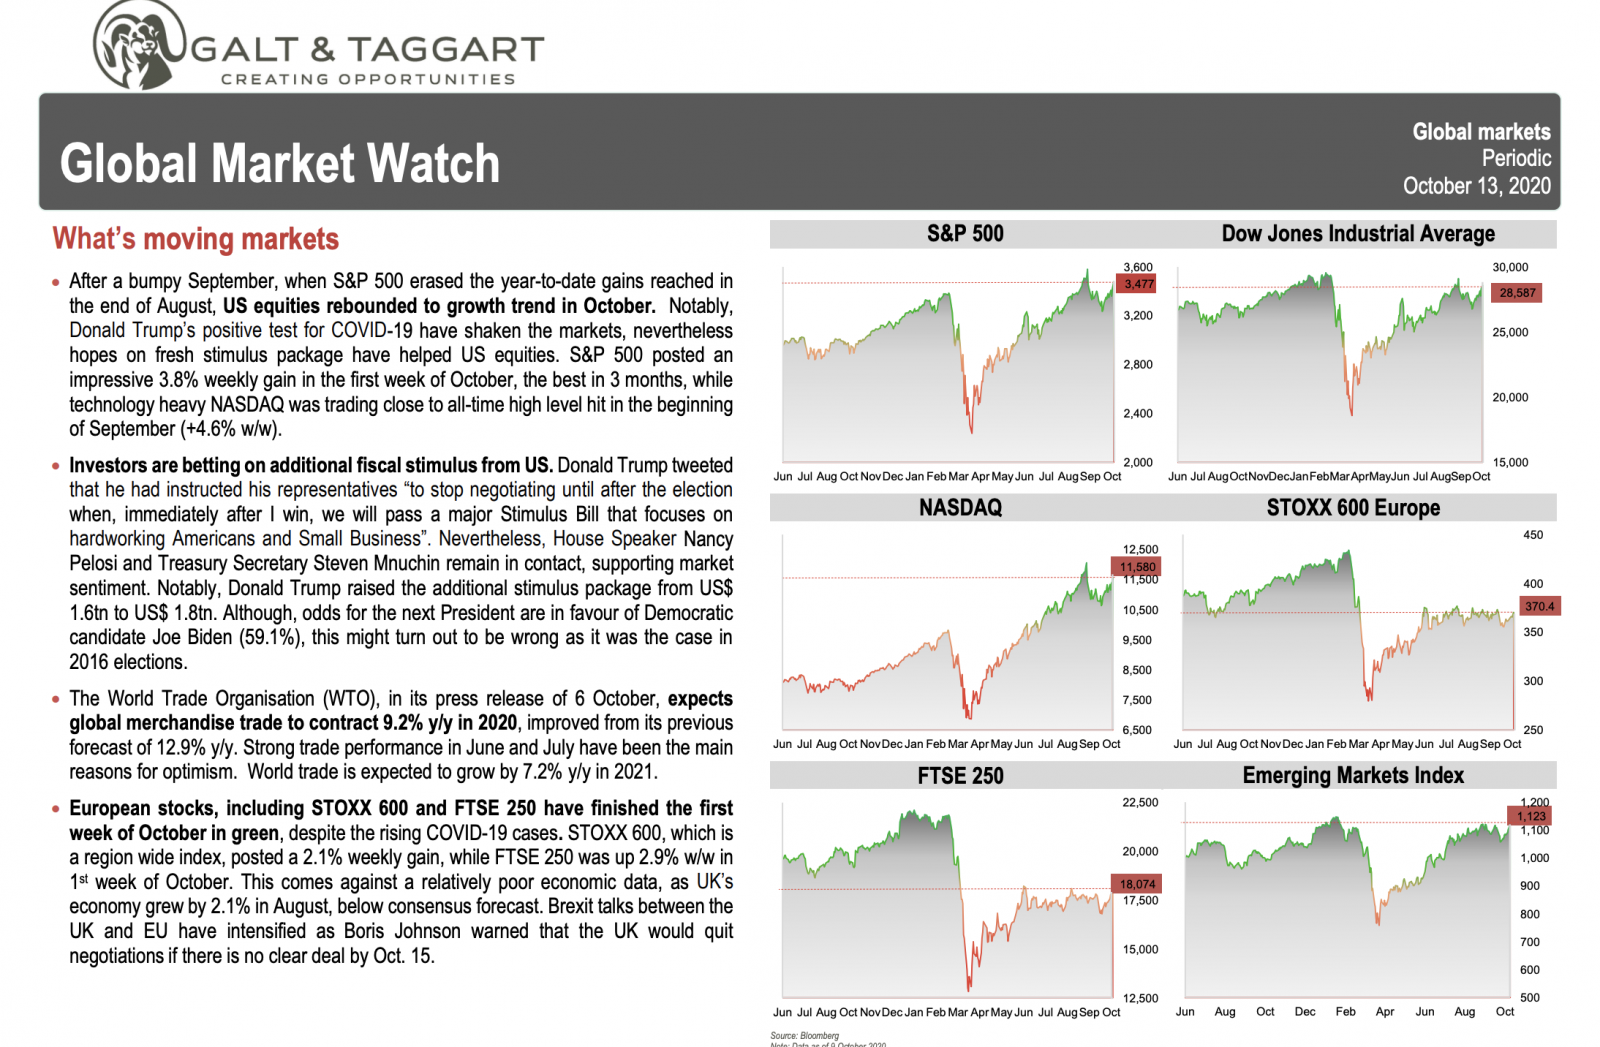 What Has Trump's Positive Test to Do With Markets? – Galt&Taggart Explains